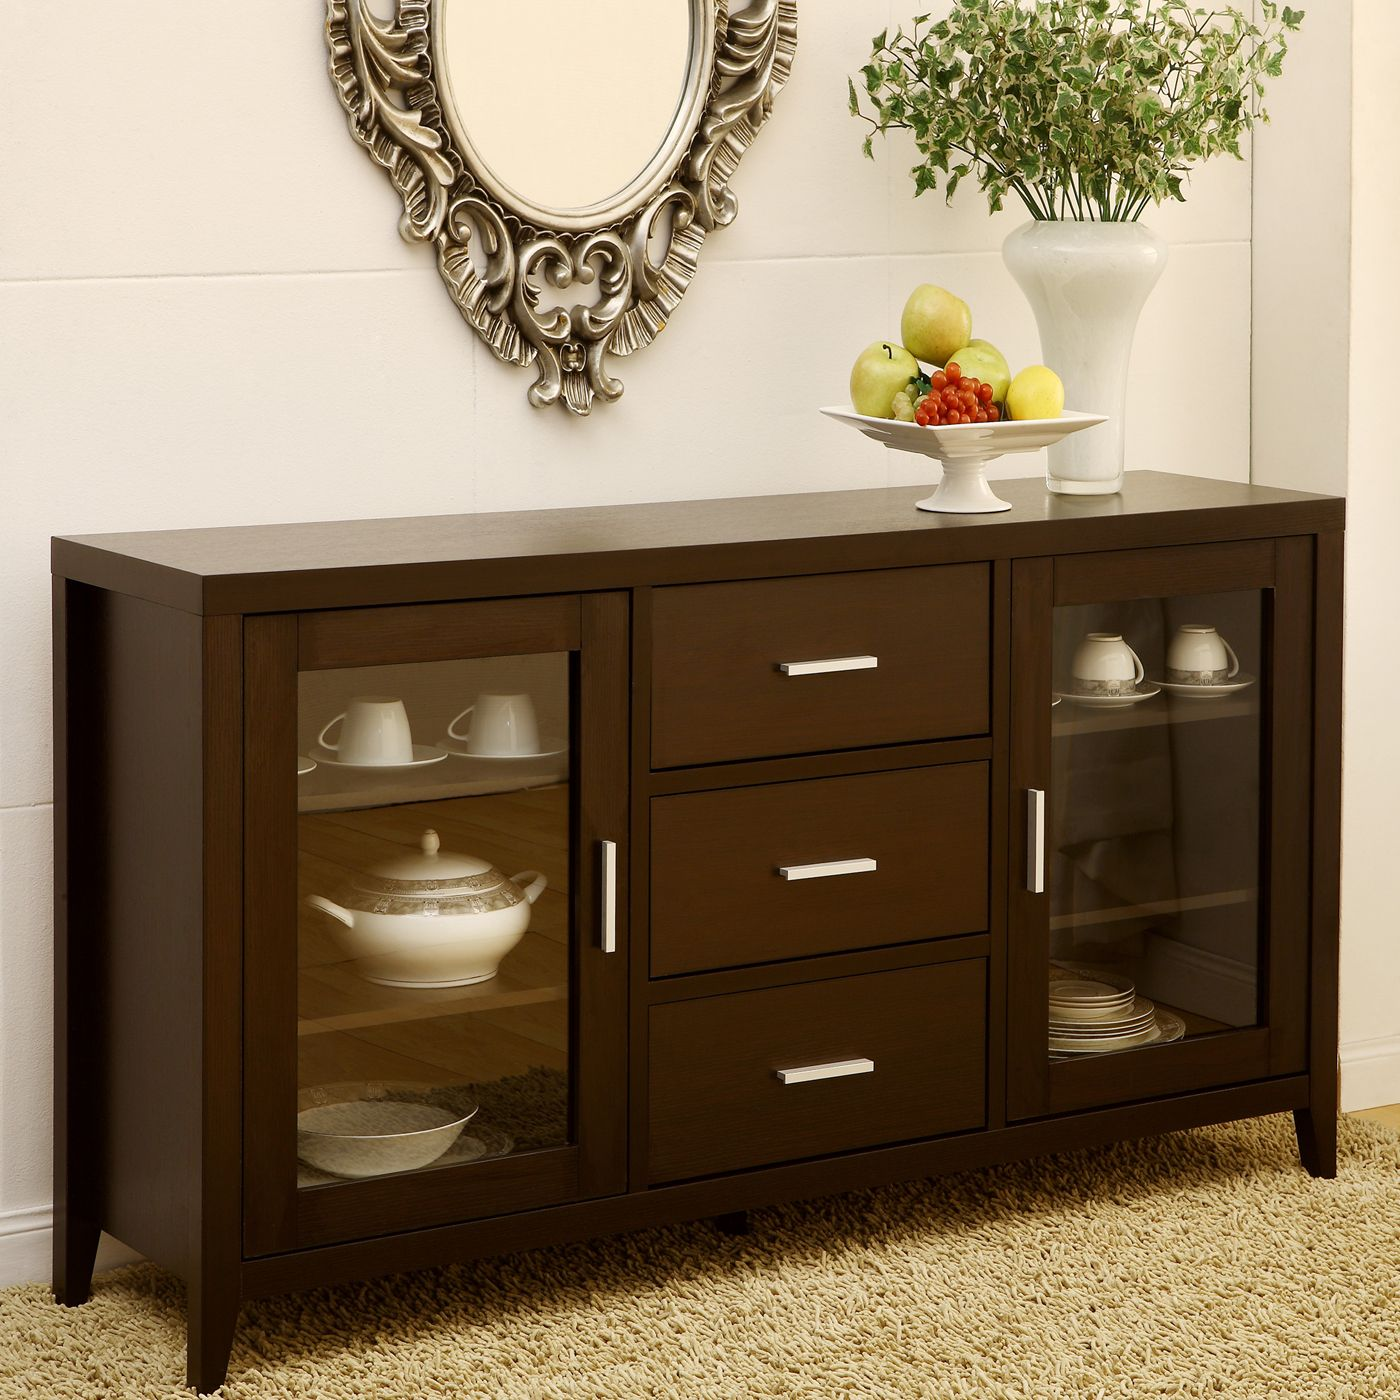 Enitial Lab Idi11456 Dixon Versatile Dining Buffet This Would Be Cool Small Dining Room Sideboard Inspiration Design